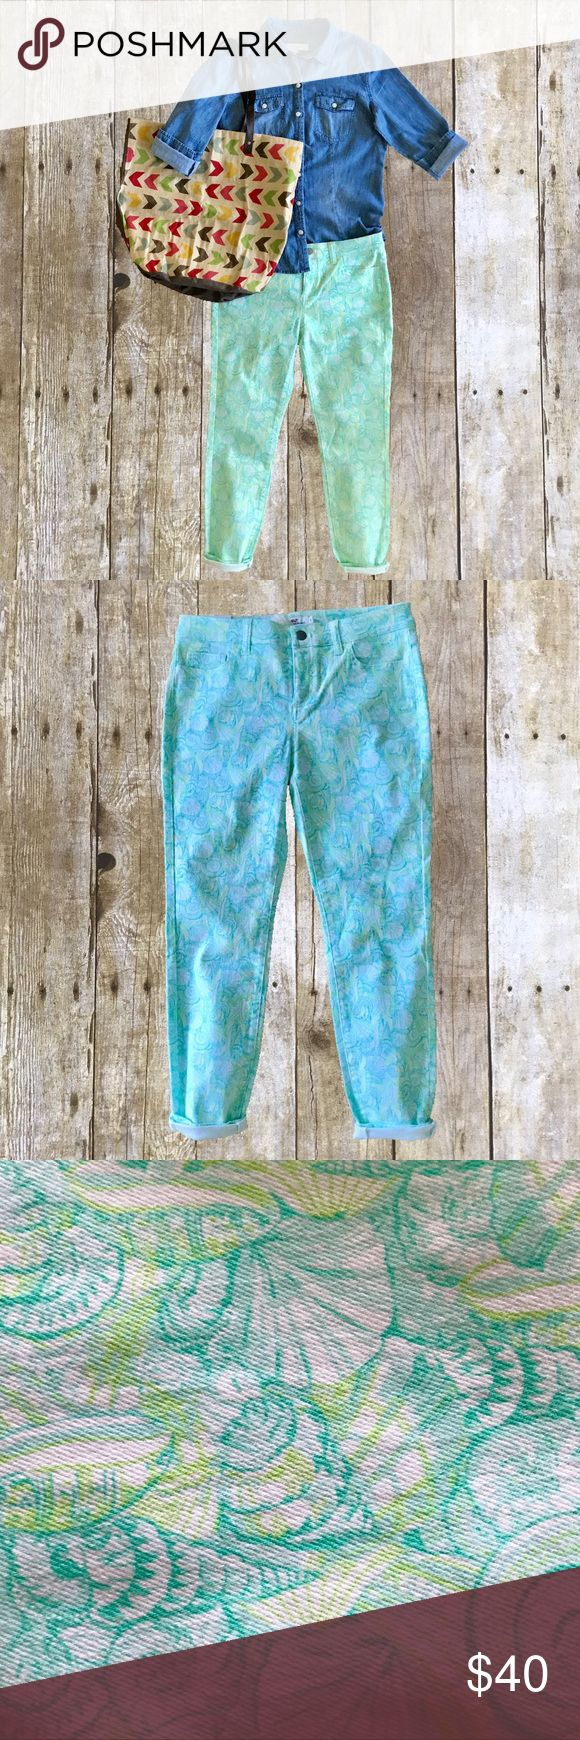 NWT Vineyard Vines Outlet Nantucket Ankle Jean 8 NWT. 98% Cotton, 2% Spandex. All over  print.   Sea foam green, lime green, mint green on white. Embroidered   on back pocket. Vineyard Vines Jeans Ankle & Cropped